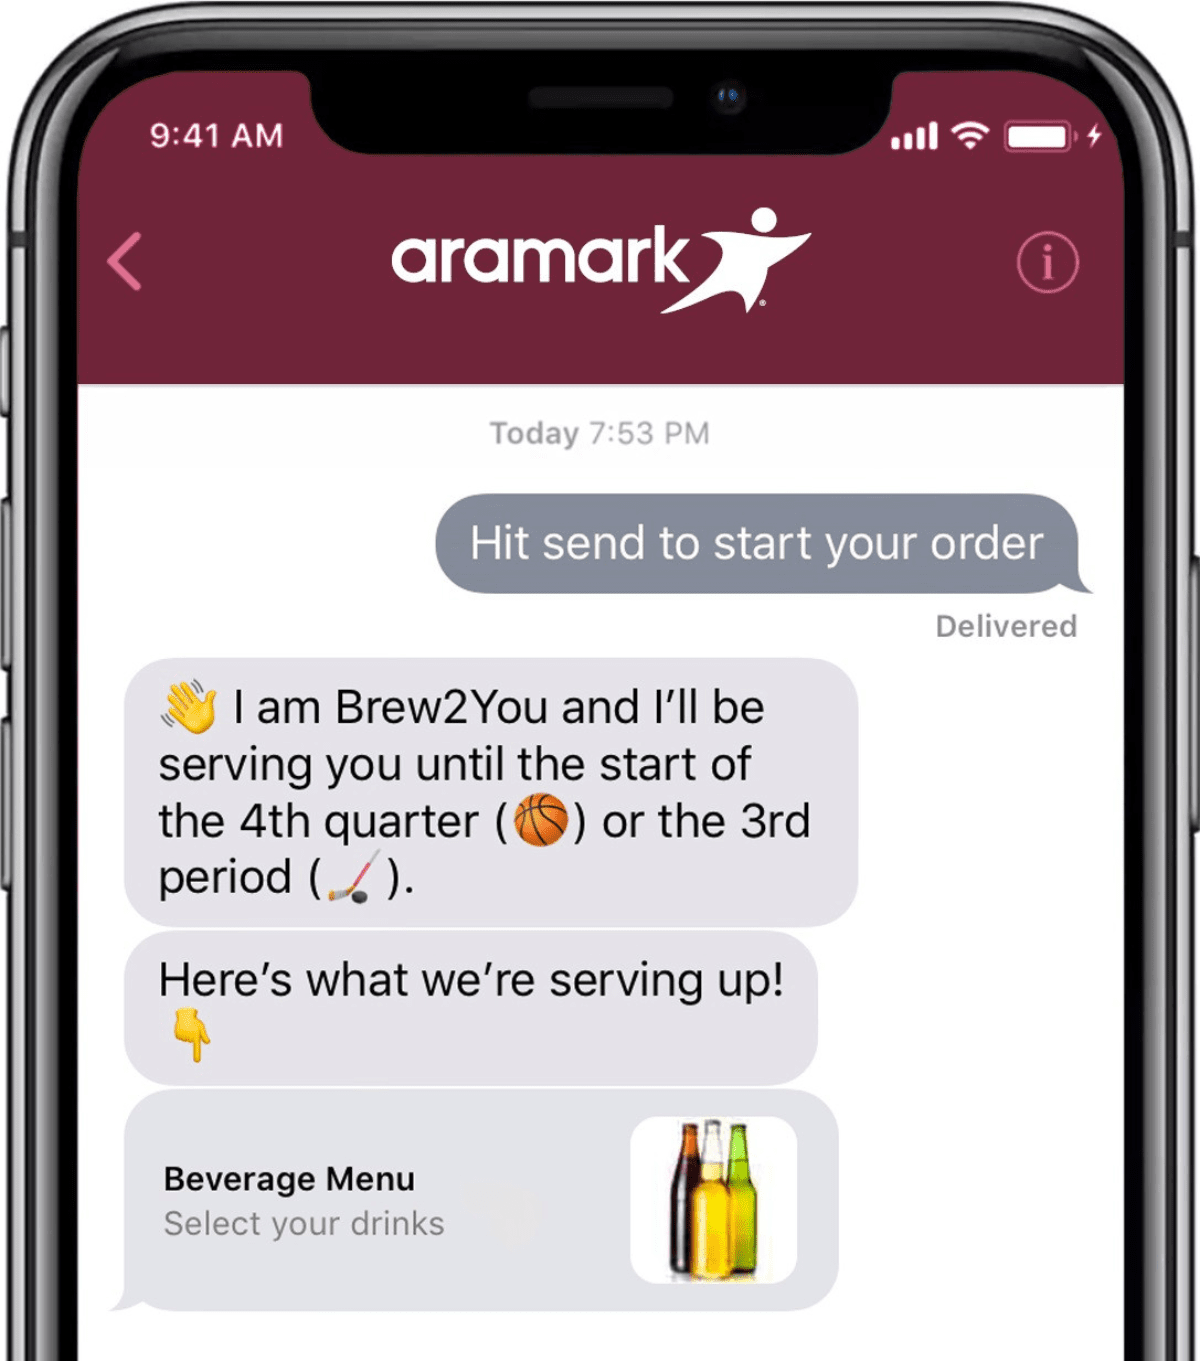 image of aramark business chat